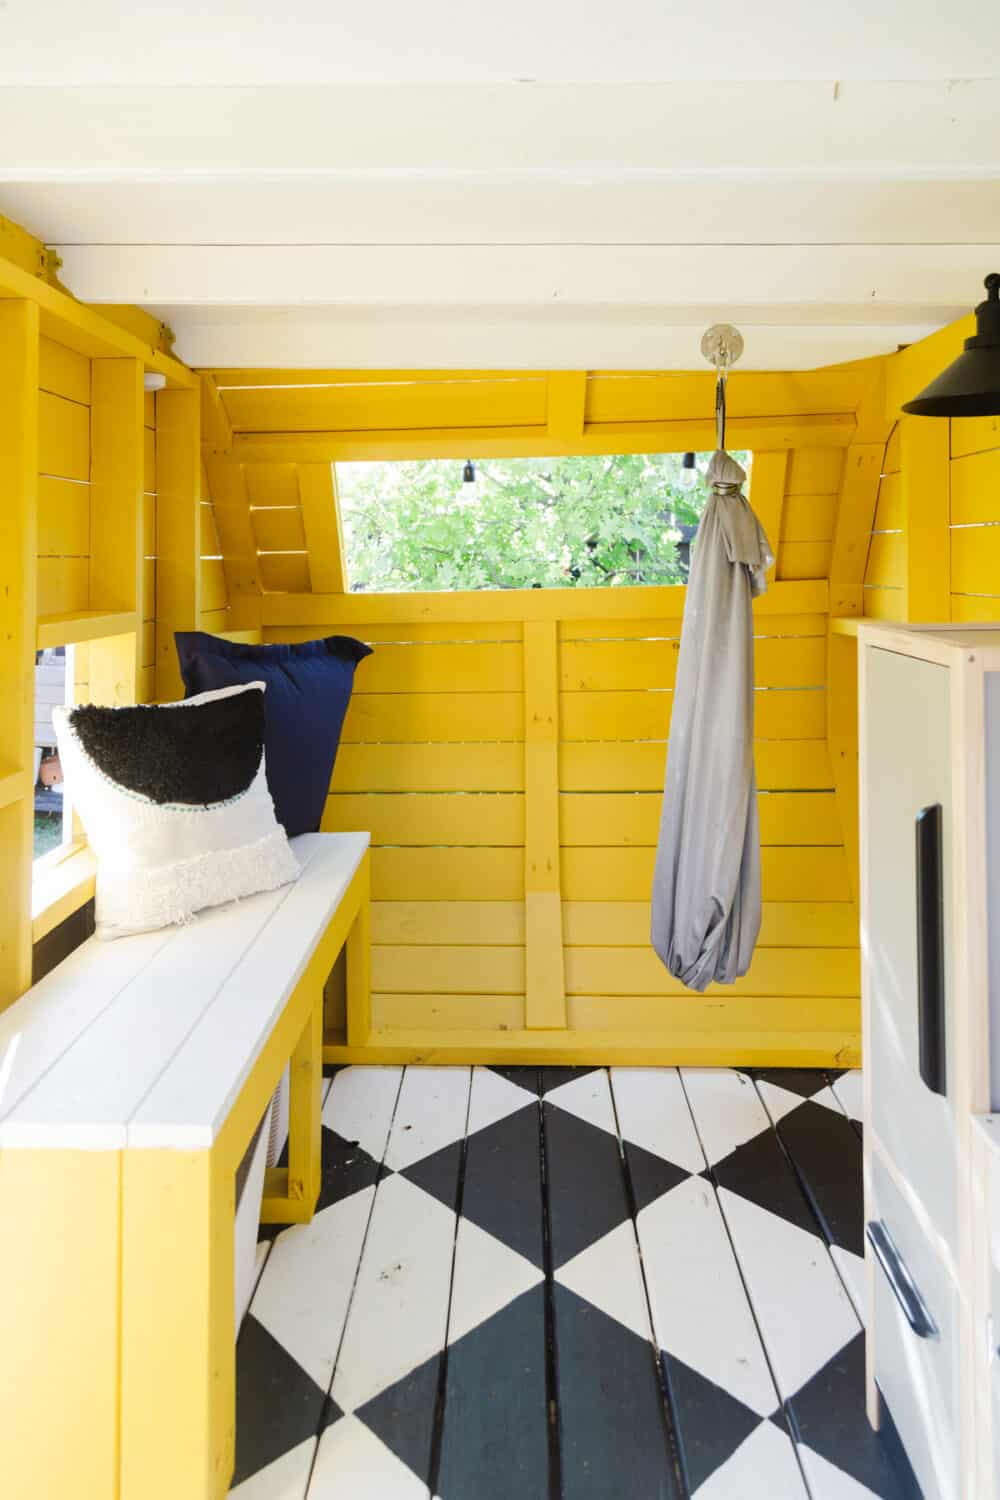 Camper playhouse with built-in bench and a swing